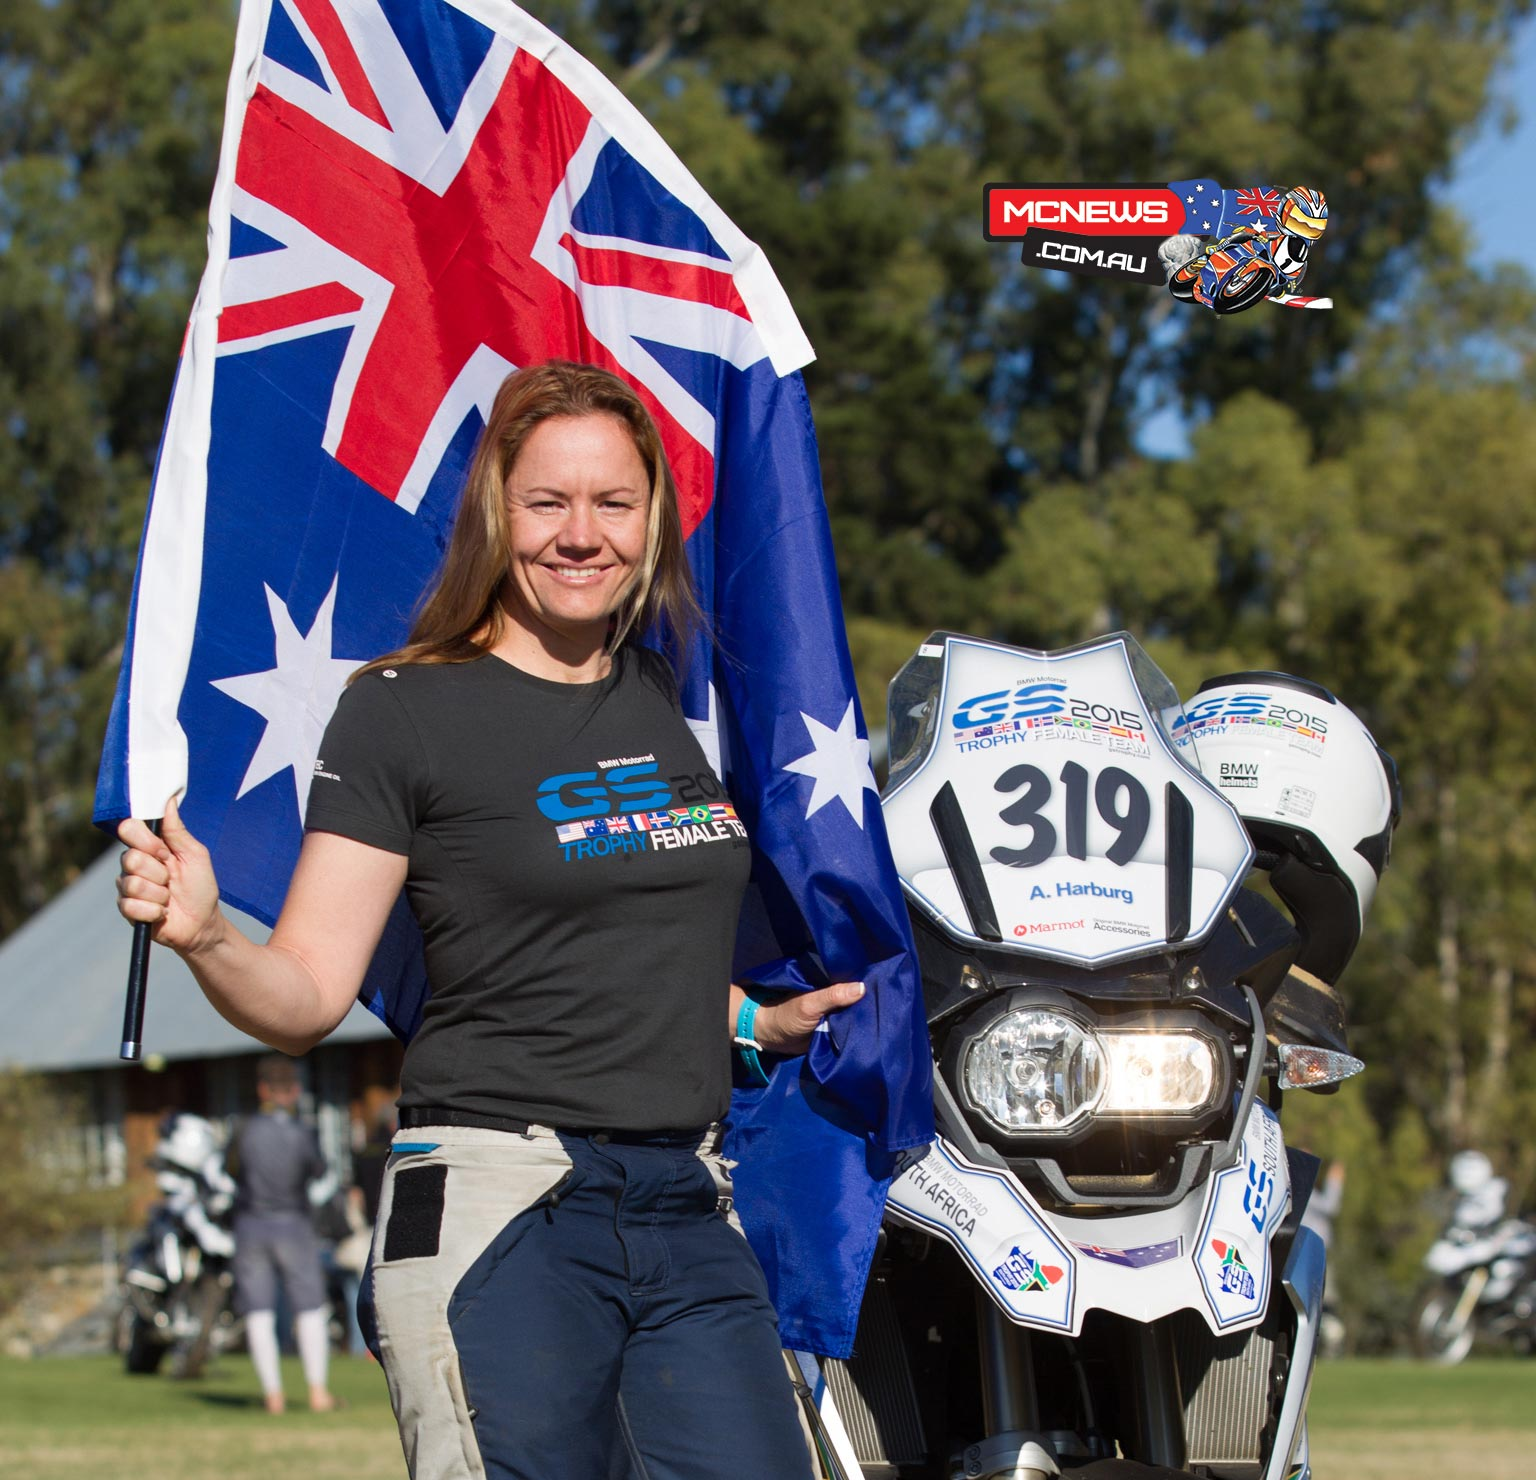 Amy Harburg, Australia , was a part of the first ever female team in Thailand in 2016.